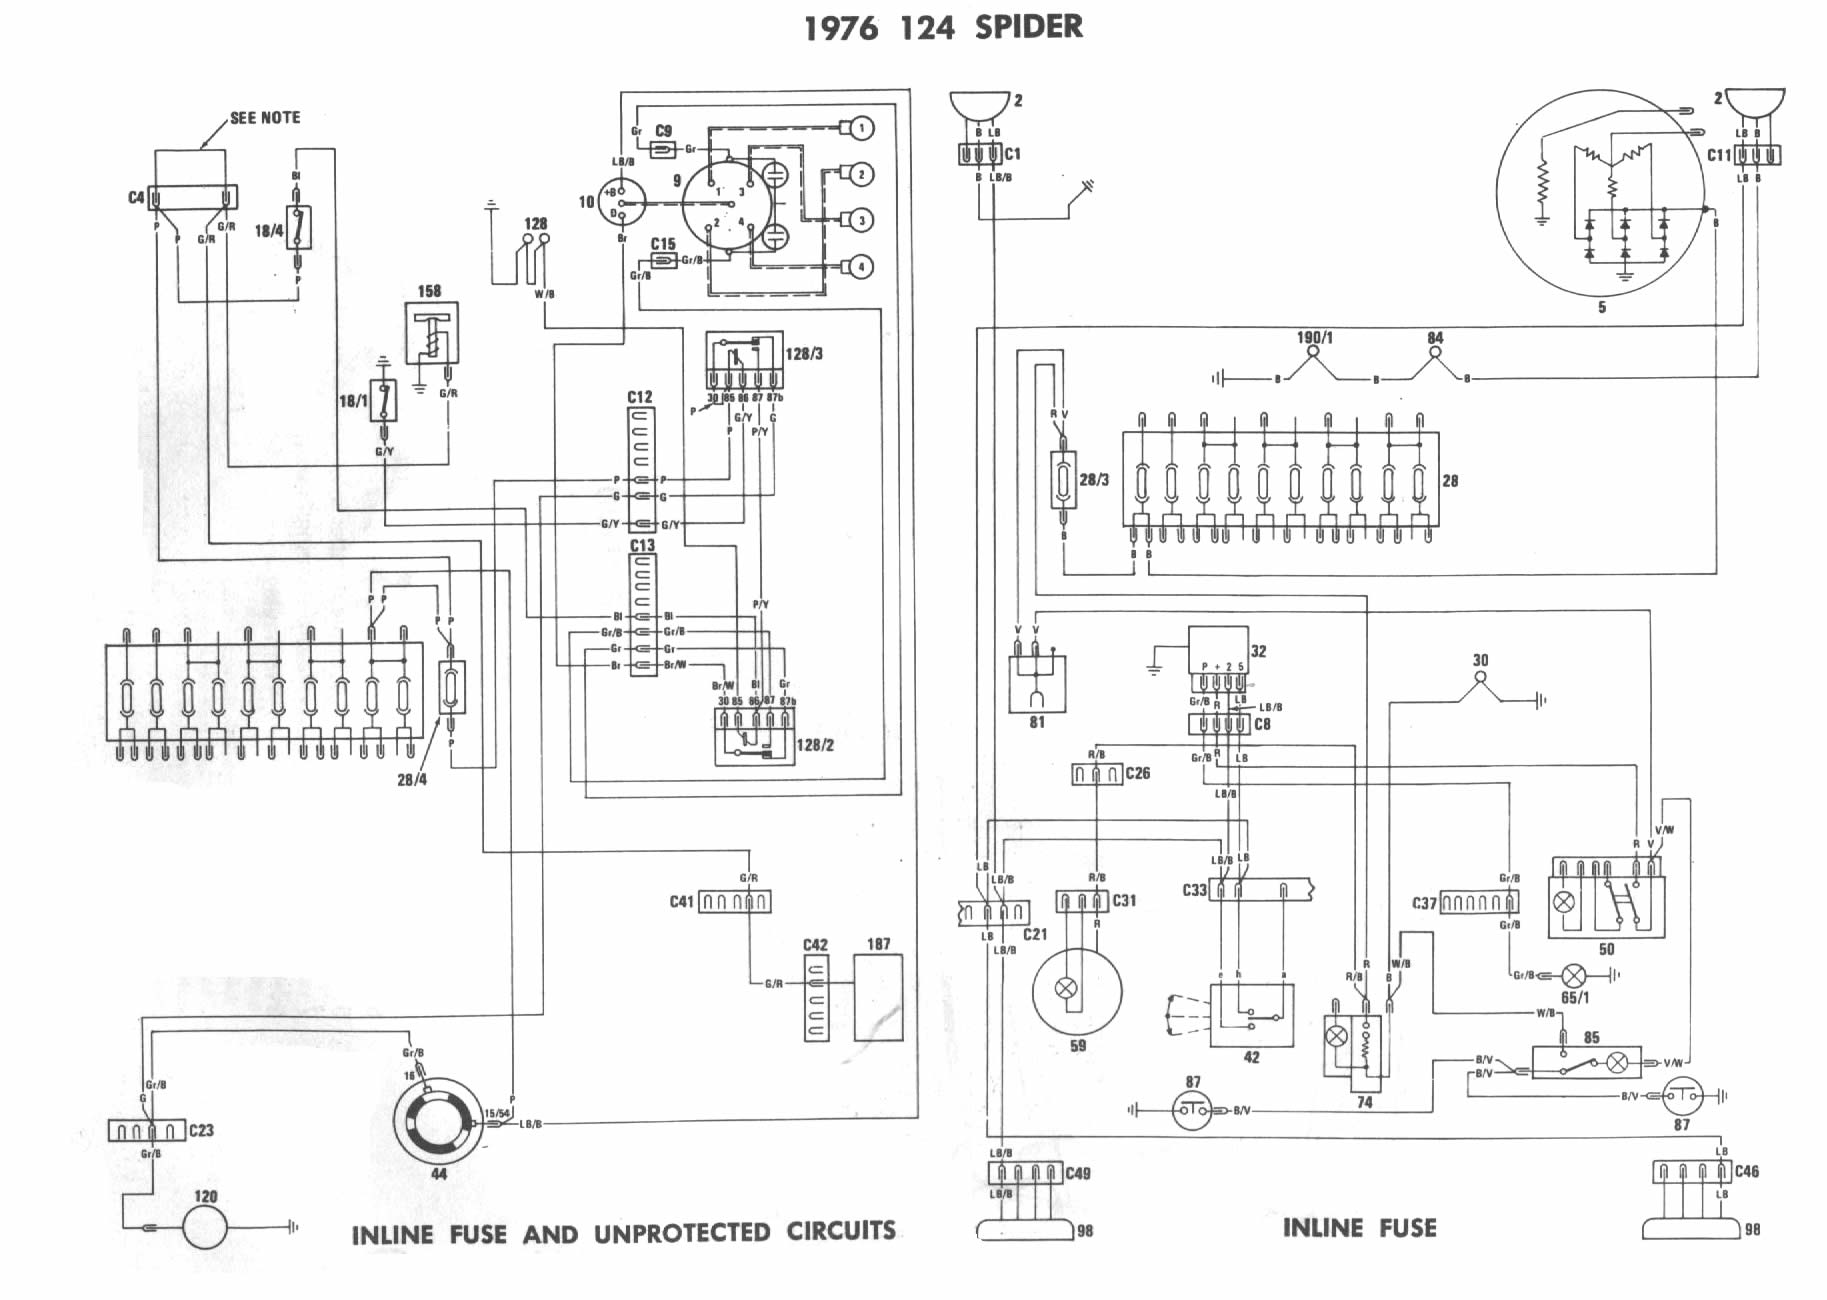 Diagram 1979 Mgb Wiring Diagram Full Version Hd Quality Wiring Diagram Wiringpros18 Dinosauri Bora It